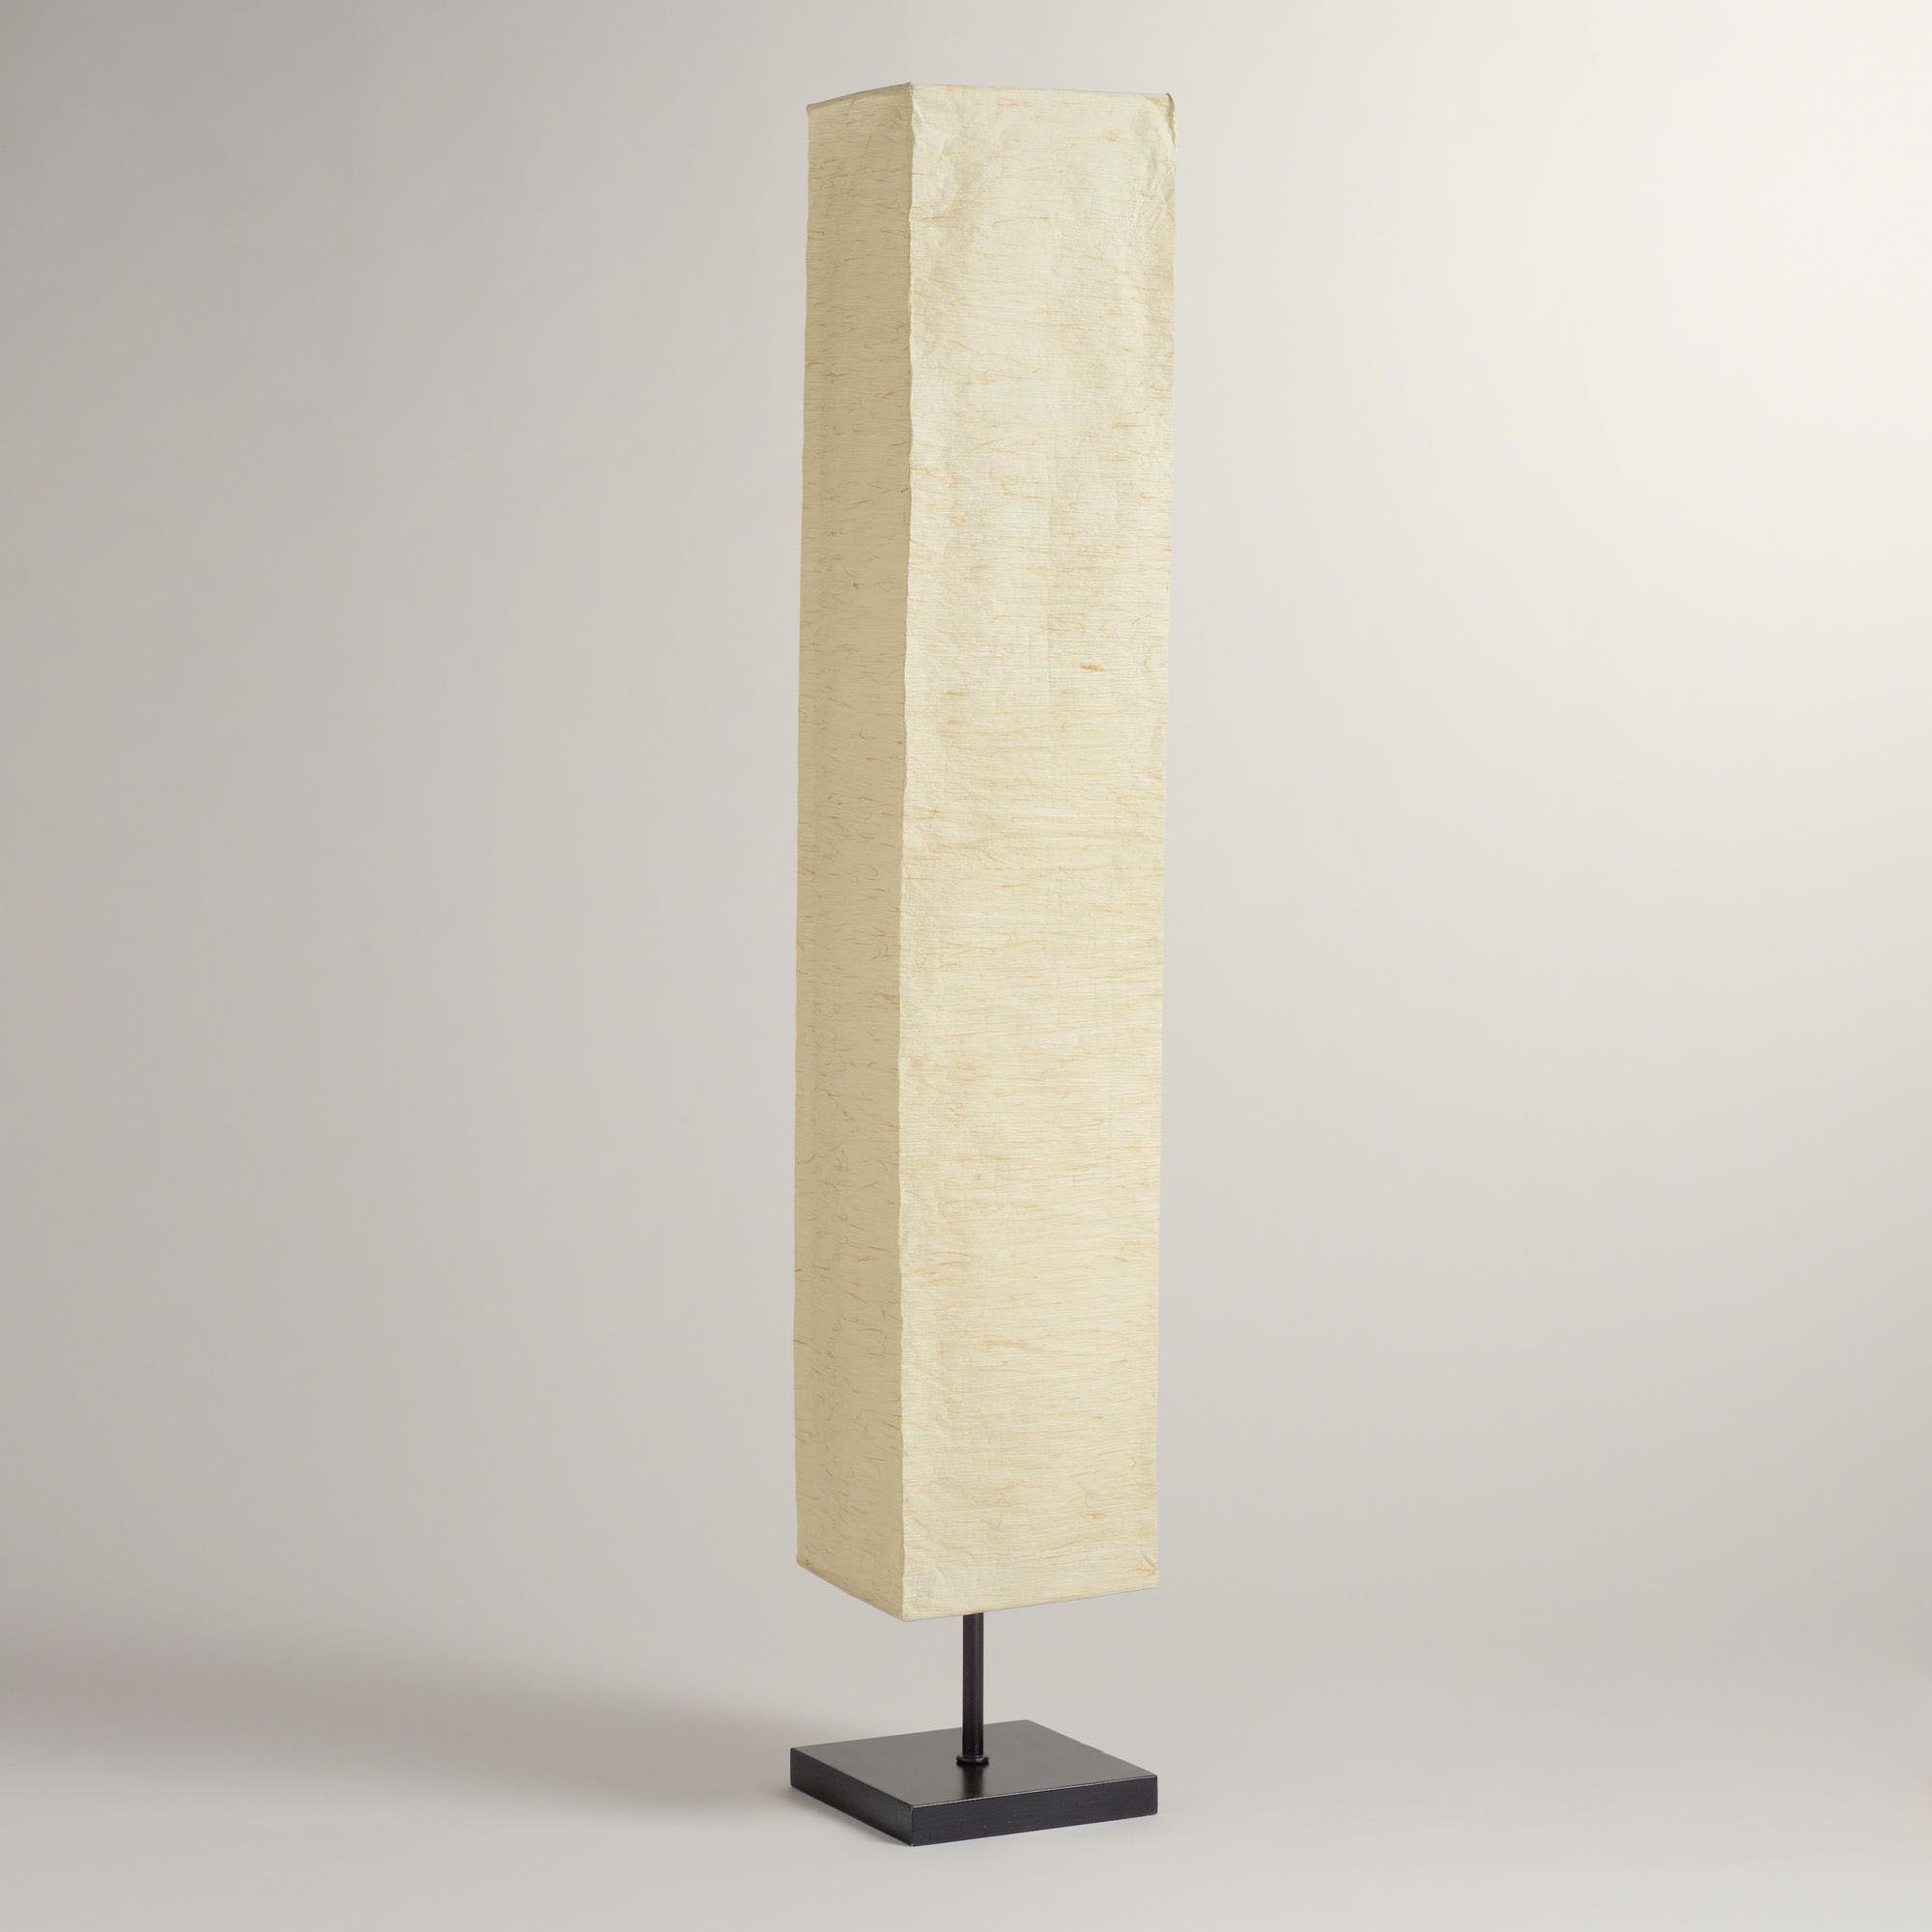 Japanese Paper Floor Lamps